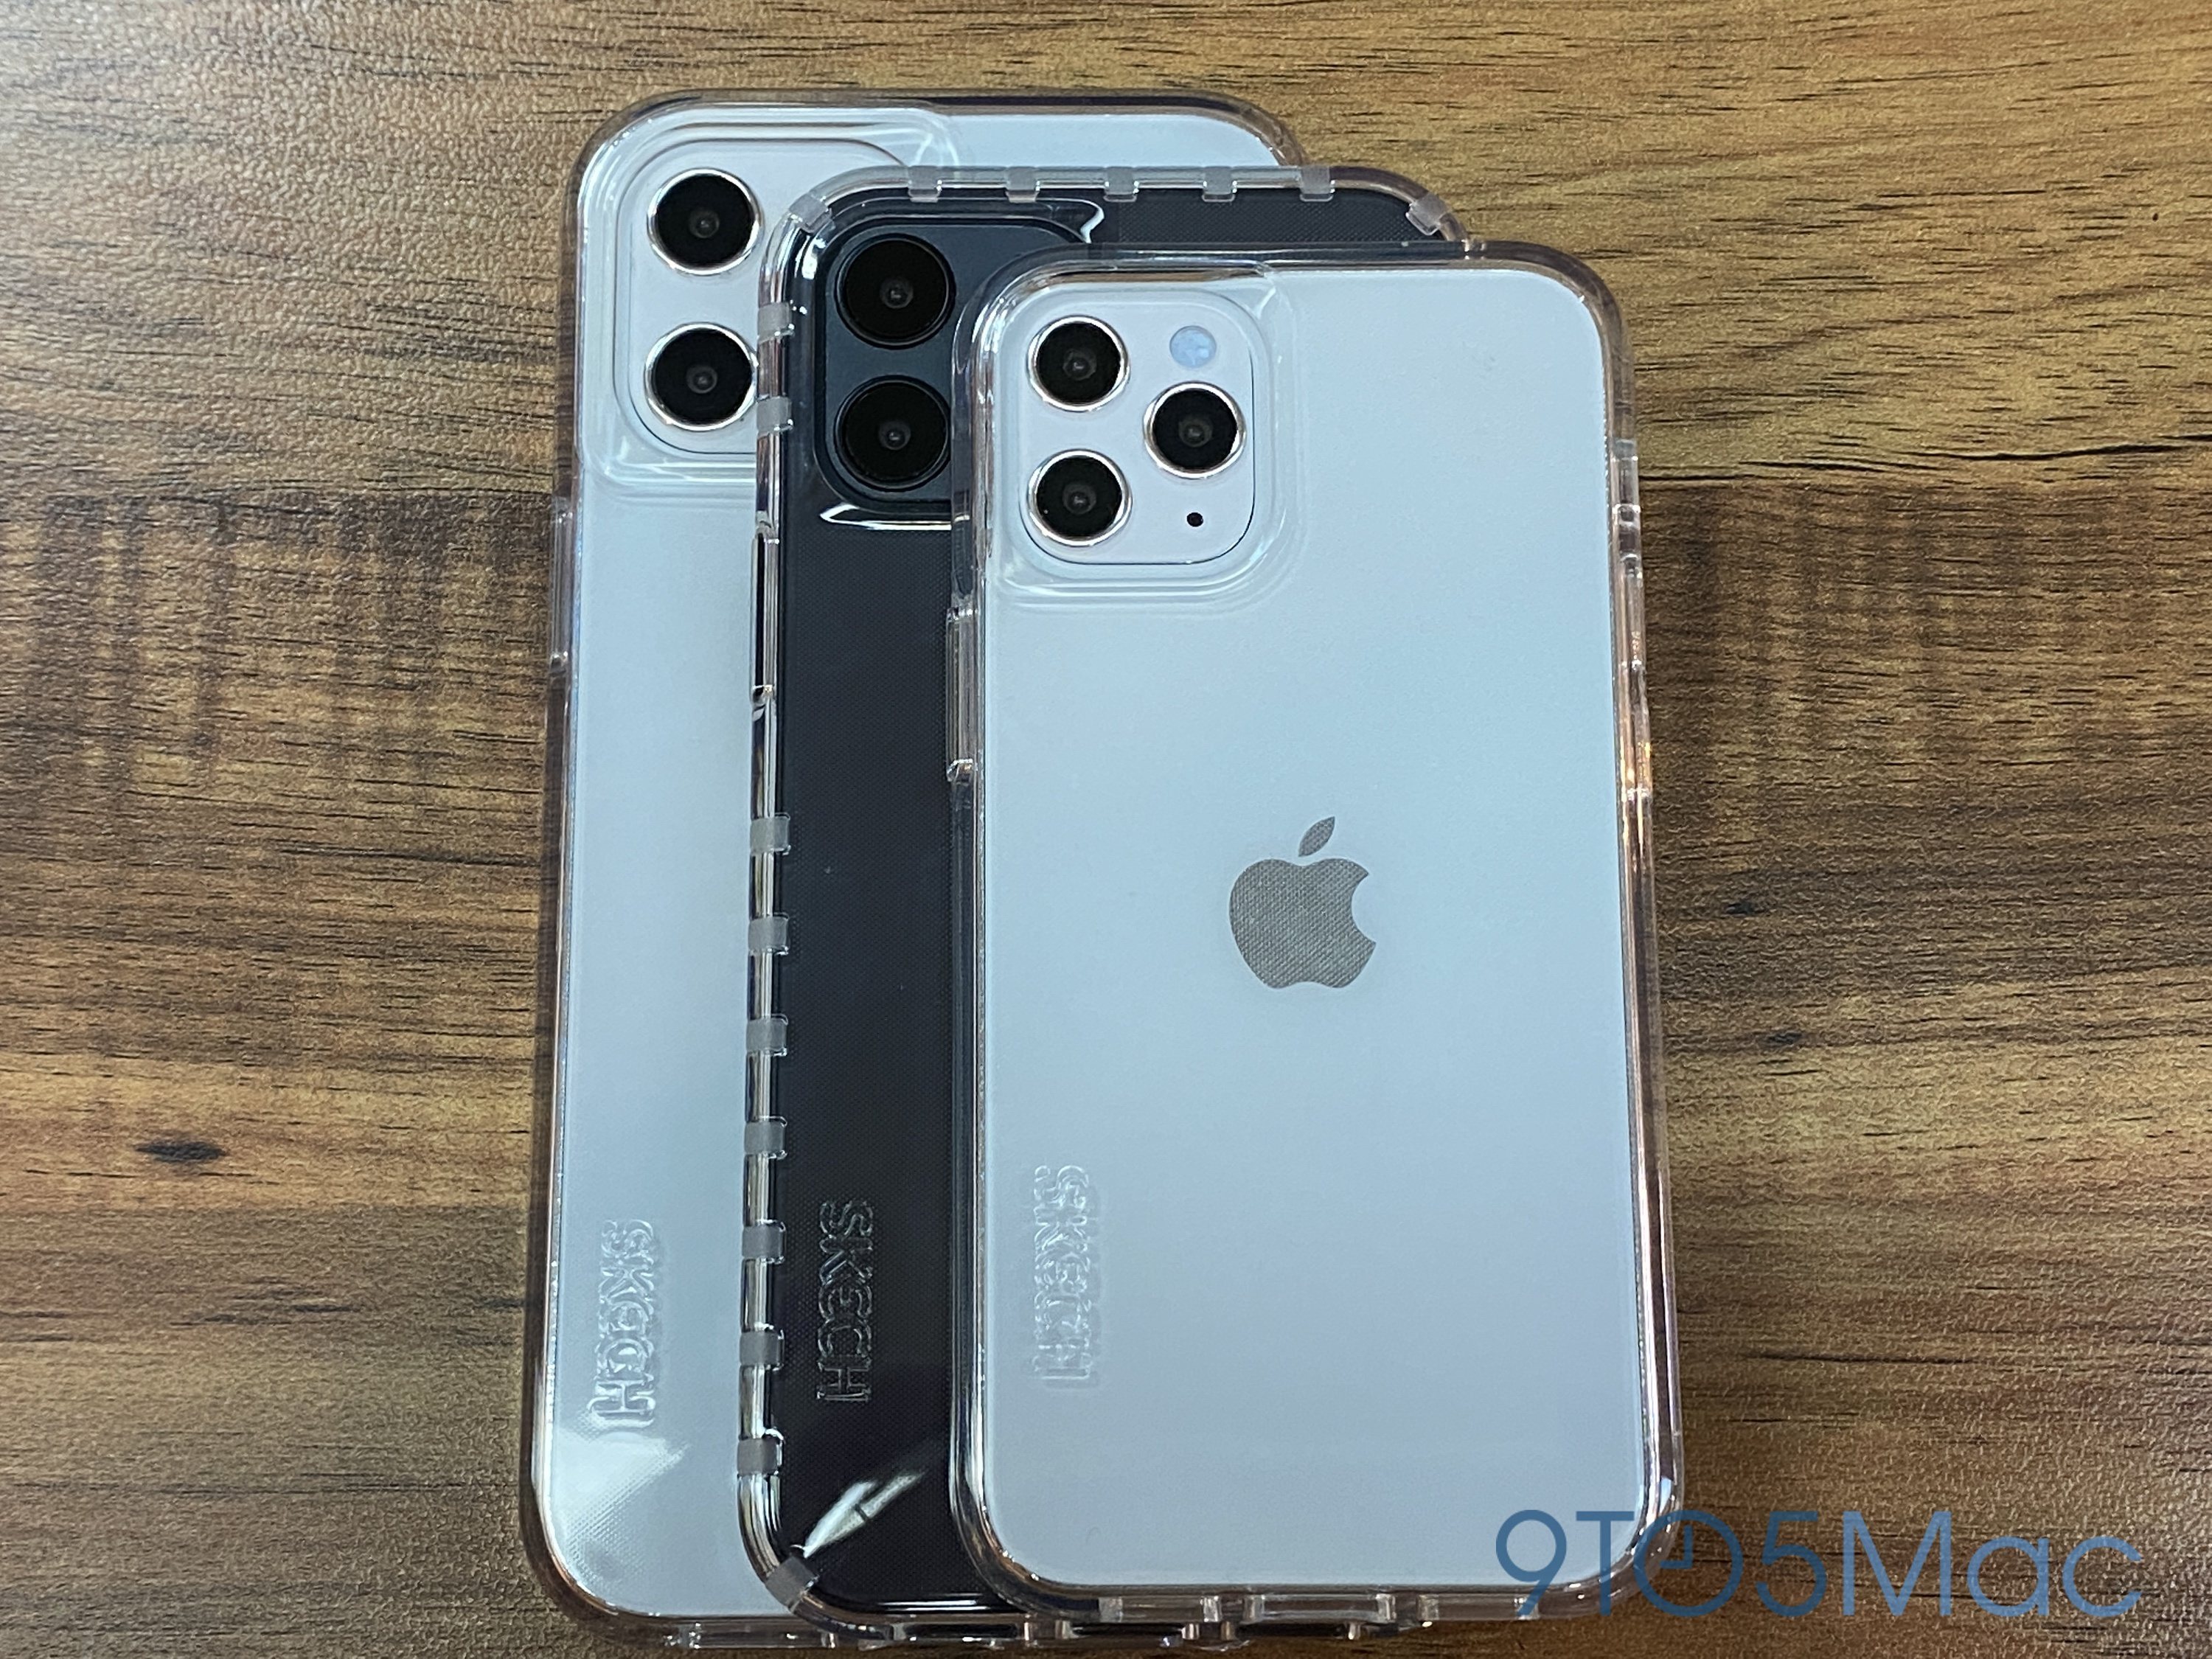 Report New 5 4 Inch Iphone To Be Called Iphone 12 Mini 9to5mac